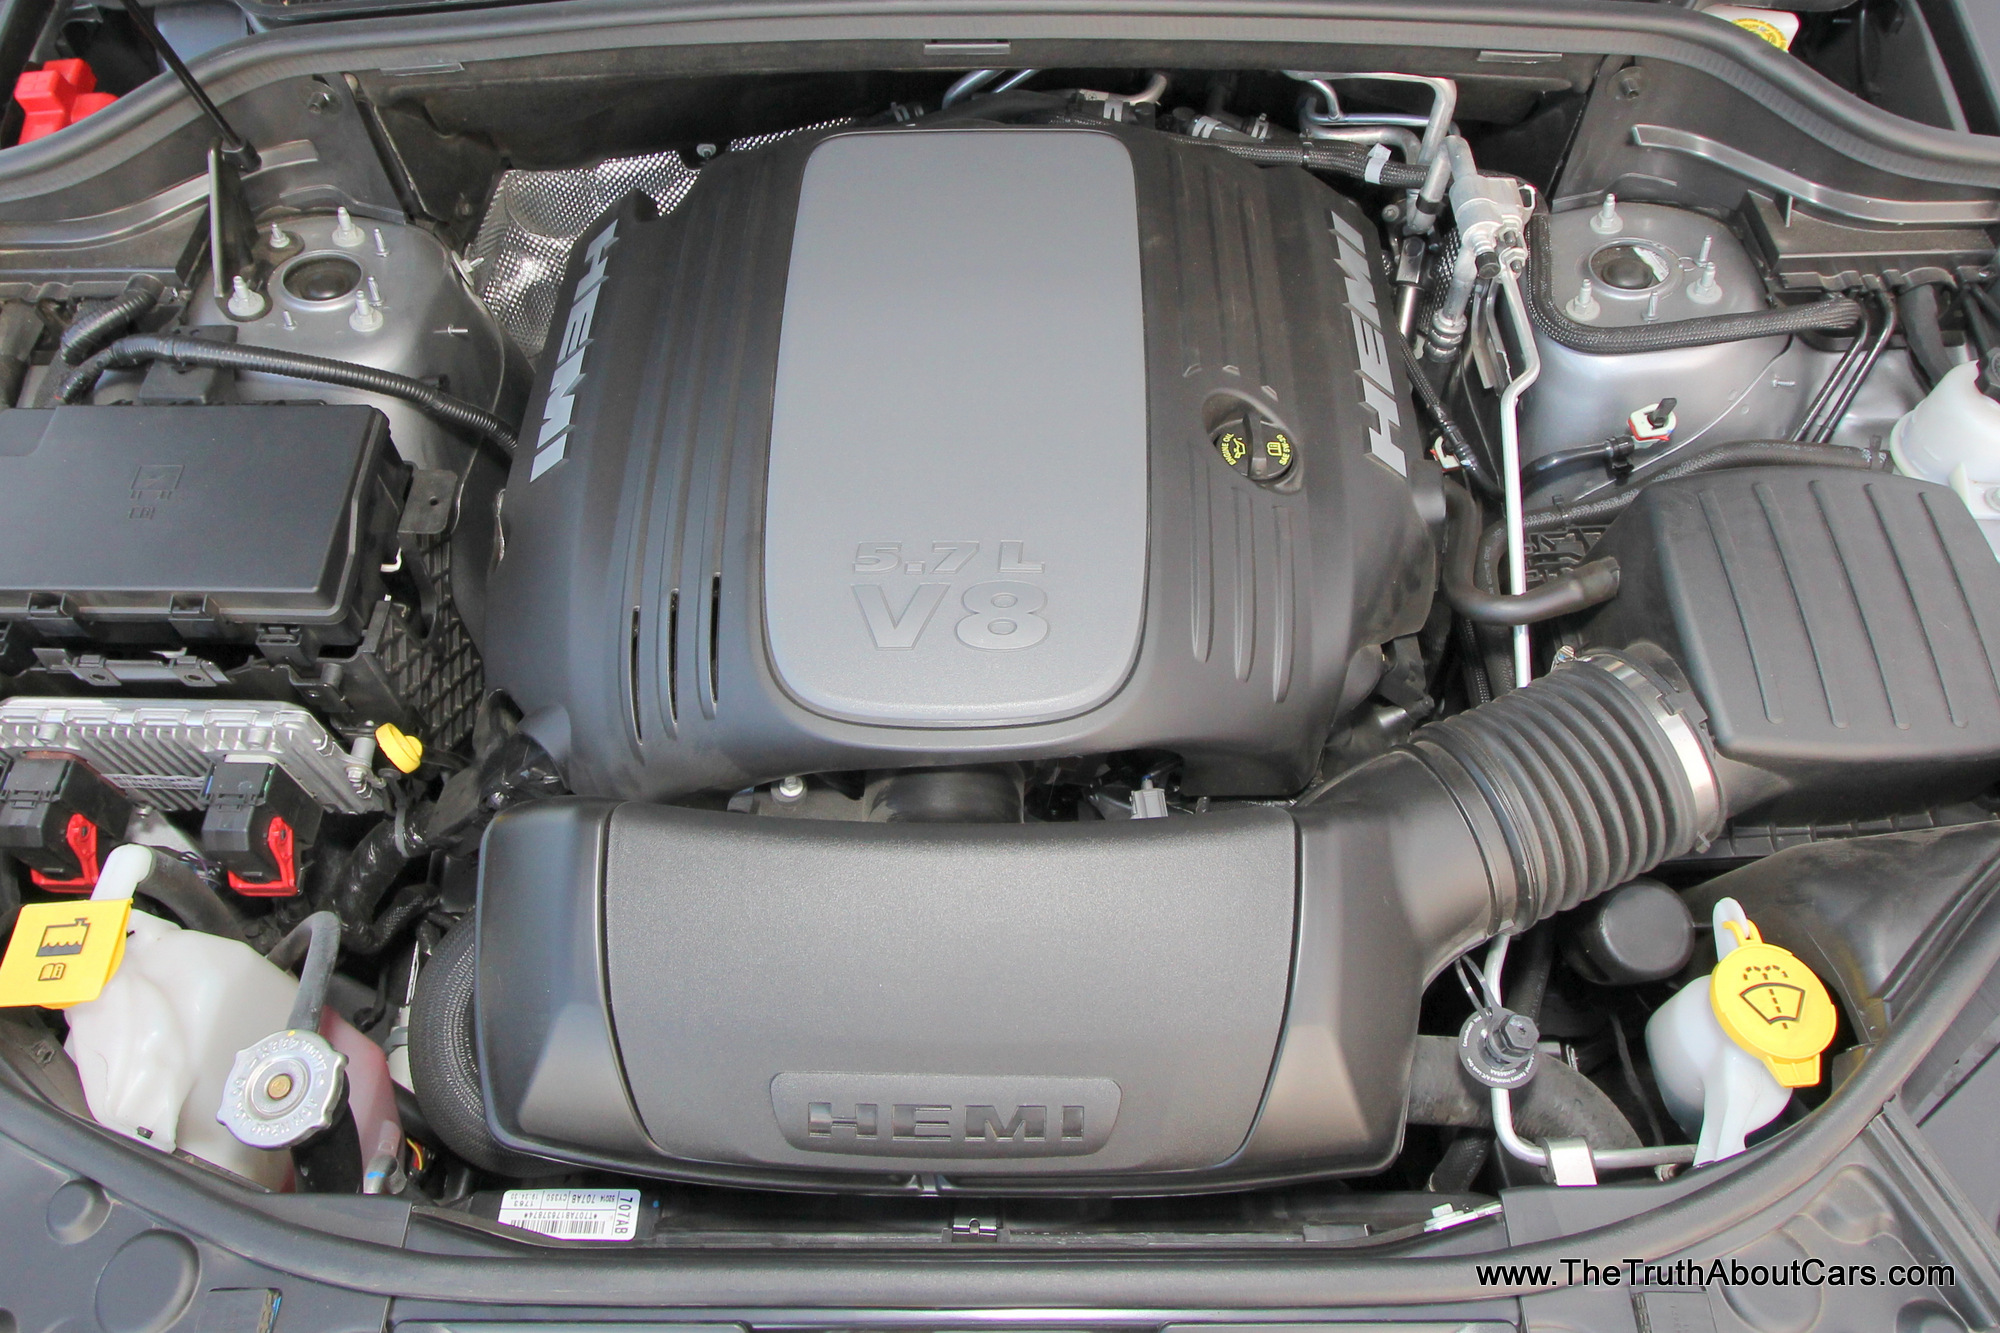 Review: 2014 Dodge Durango Limited V8 (with Video) - The Truth About ...